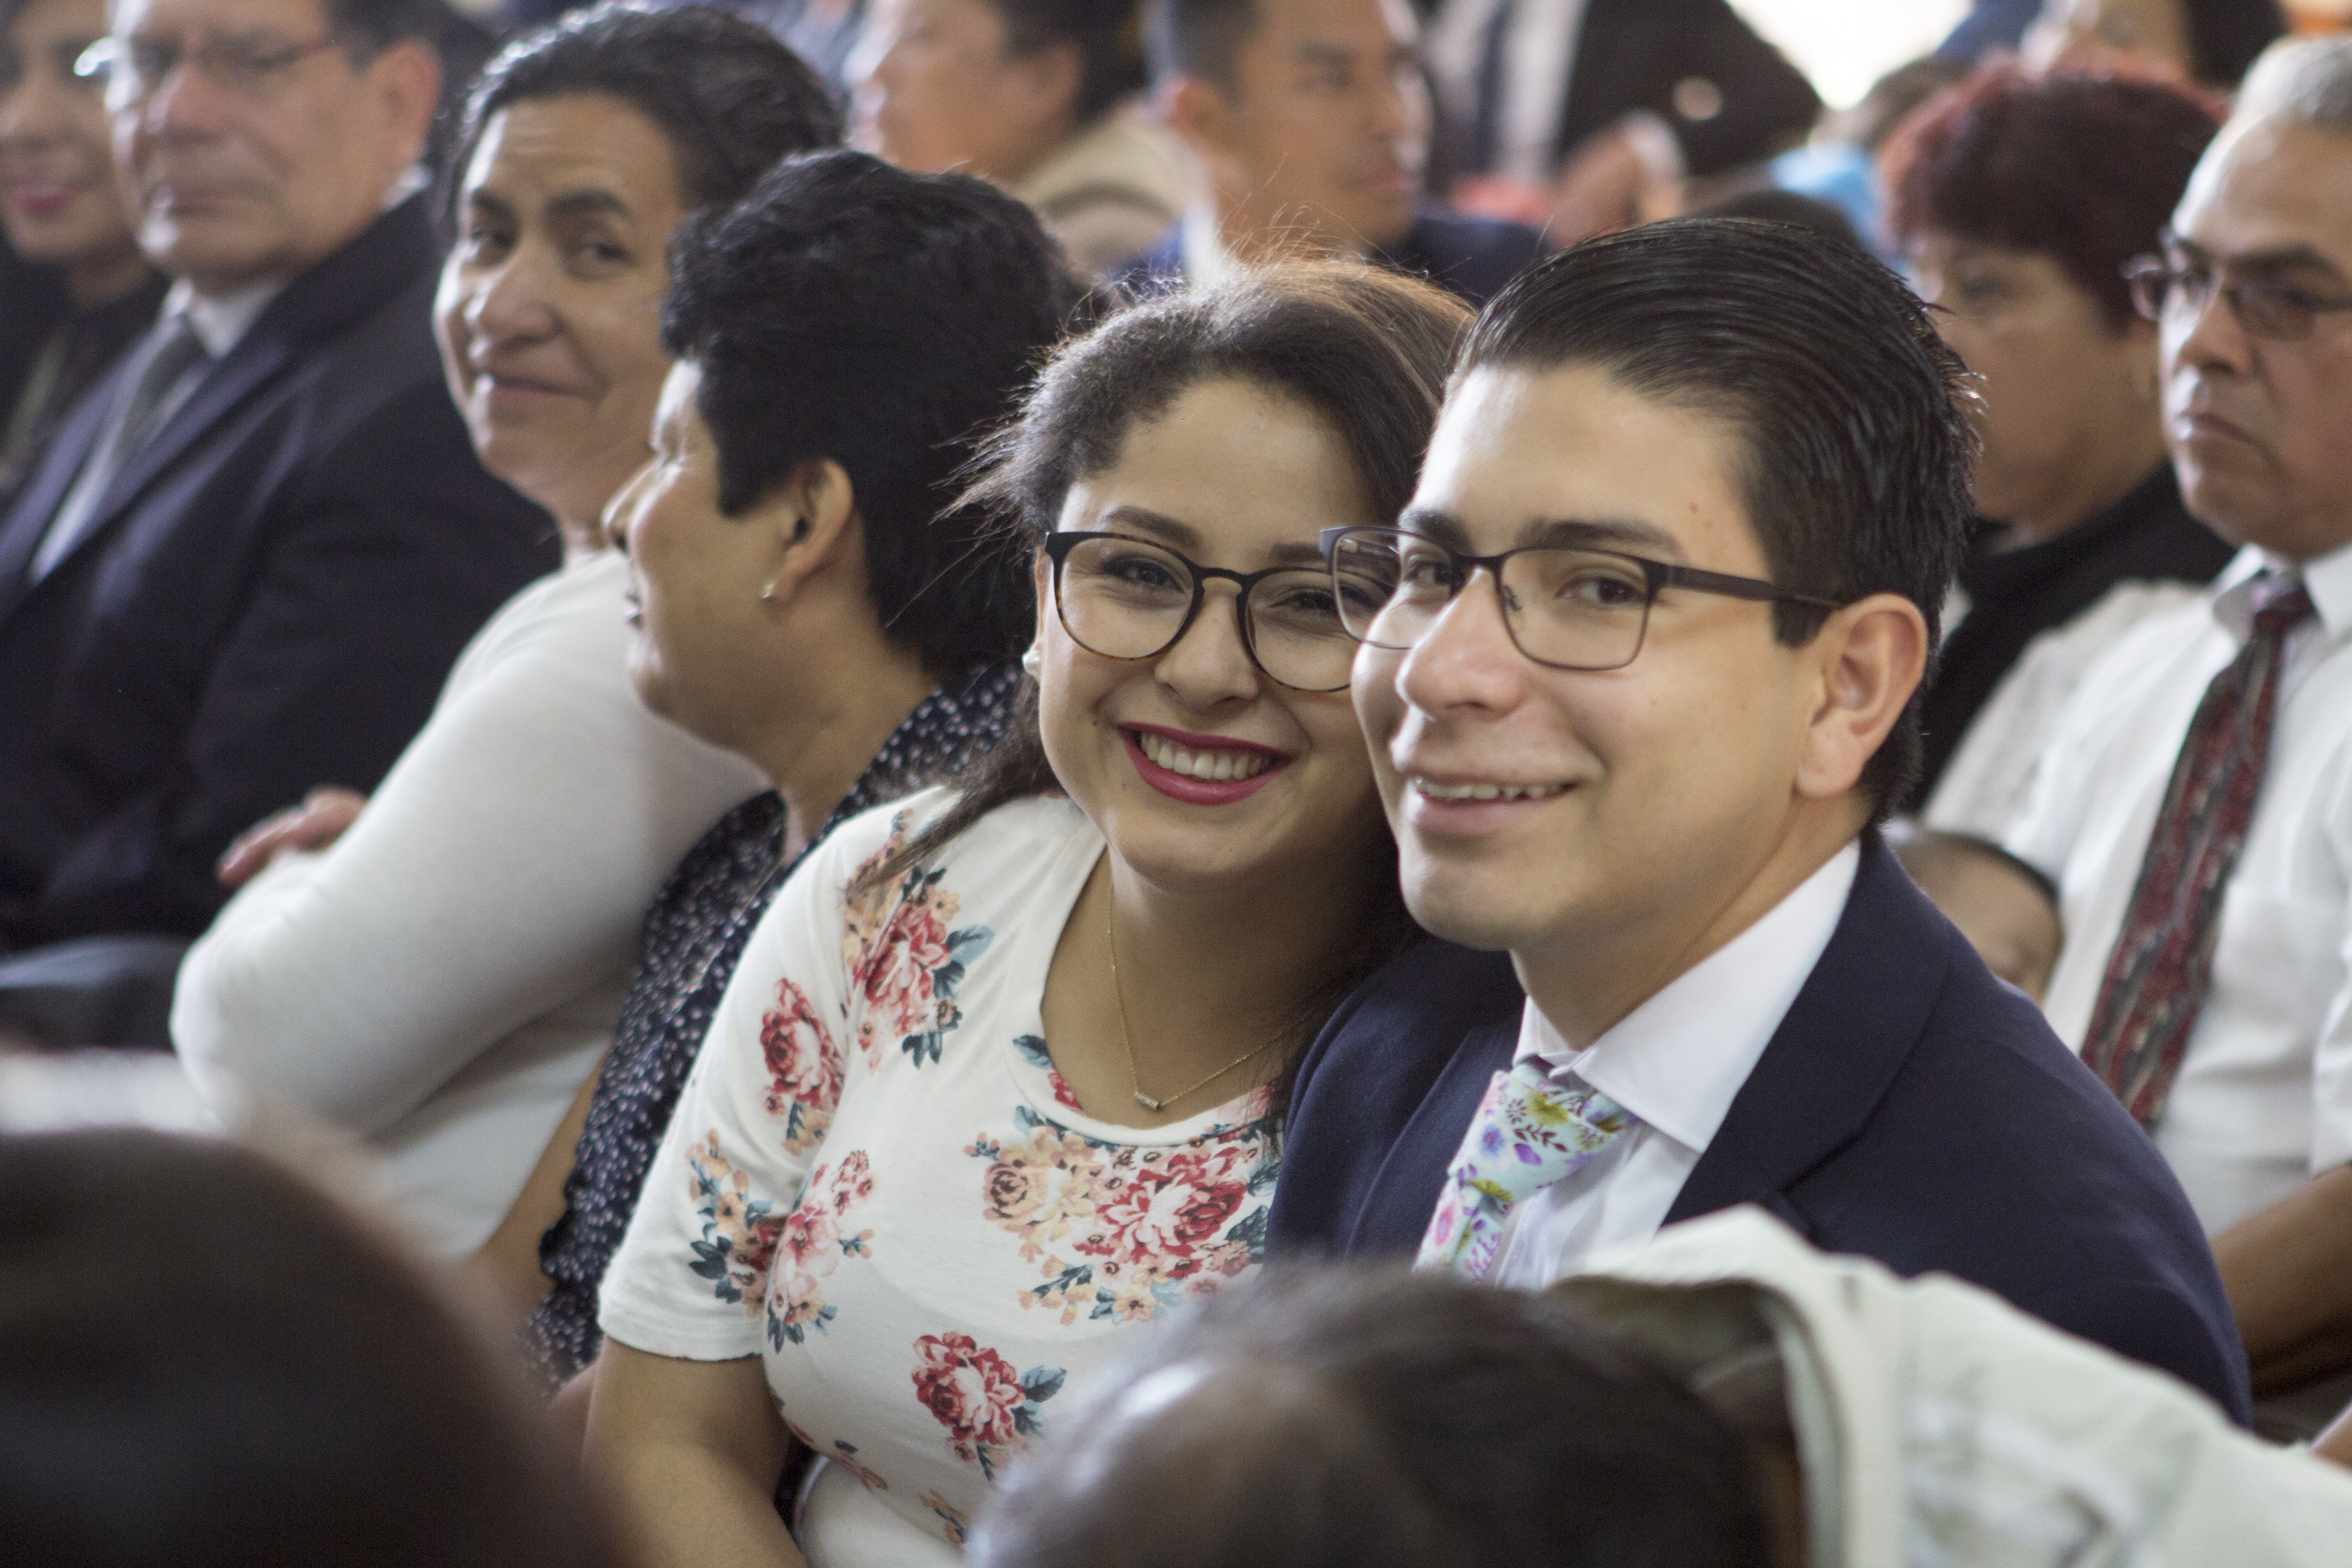 A couple smiles for a photo on Sunday, February 17 at the special conference of the Guatemala City Montserrat Stake.